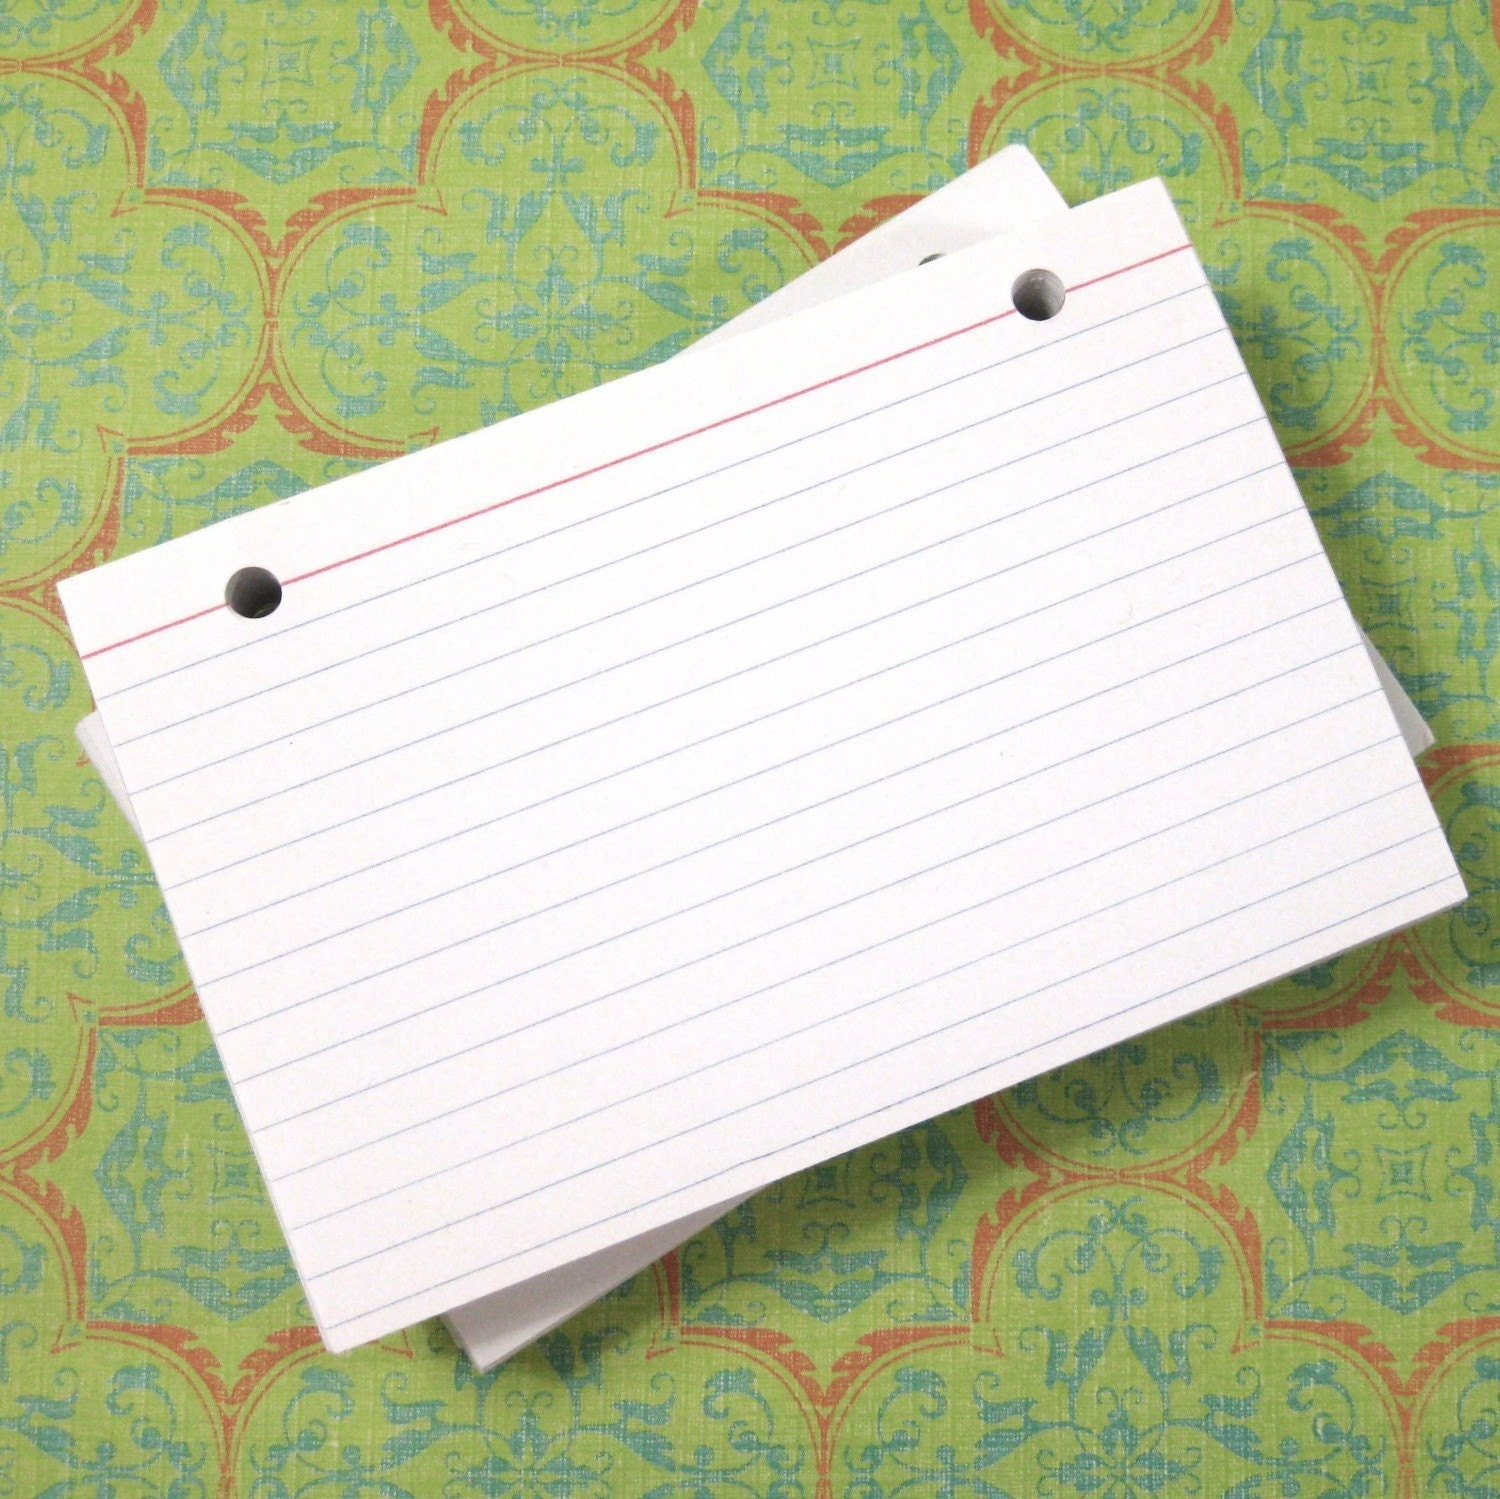 4 X 6 Index Cards Or Note Cards 100 Count Refill